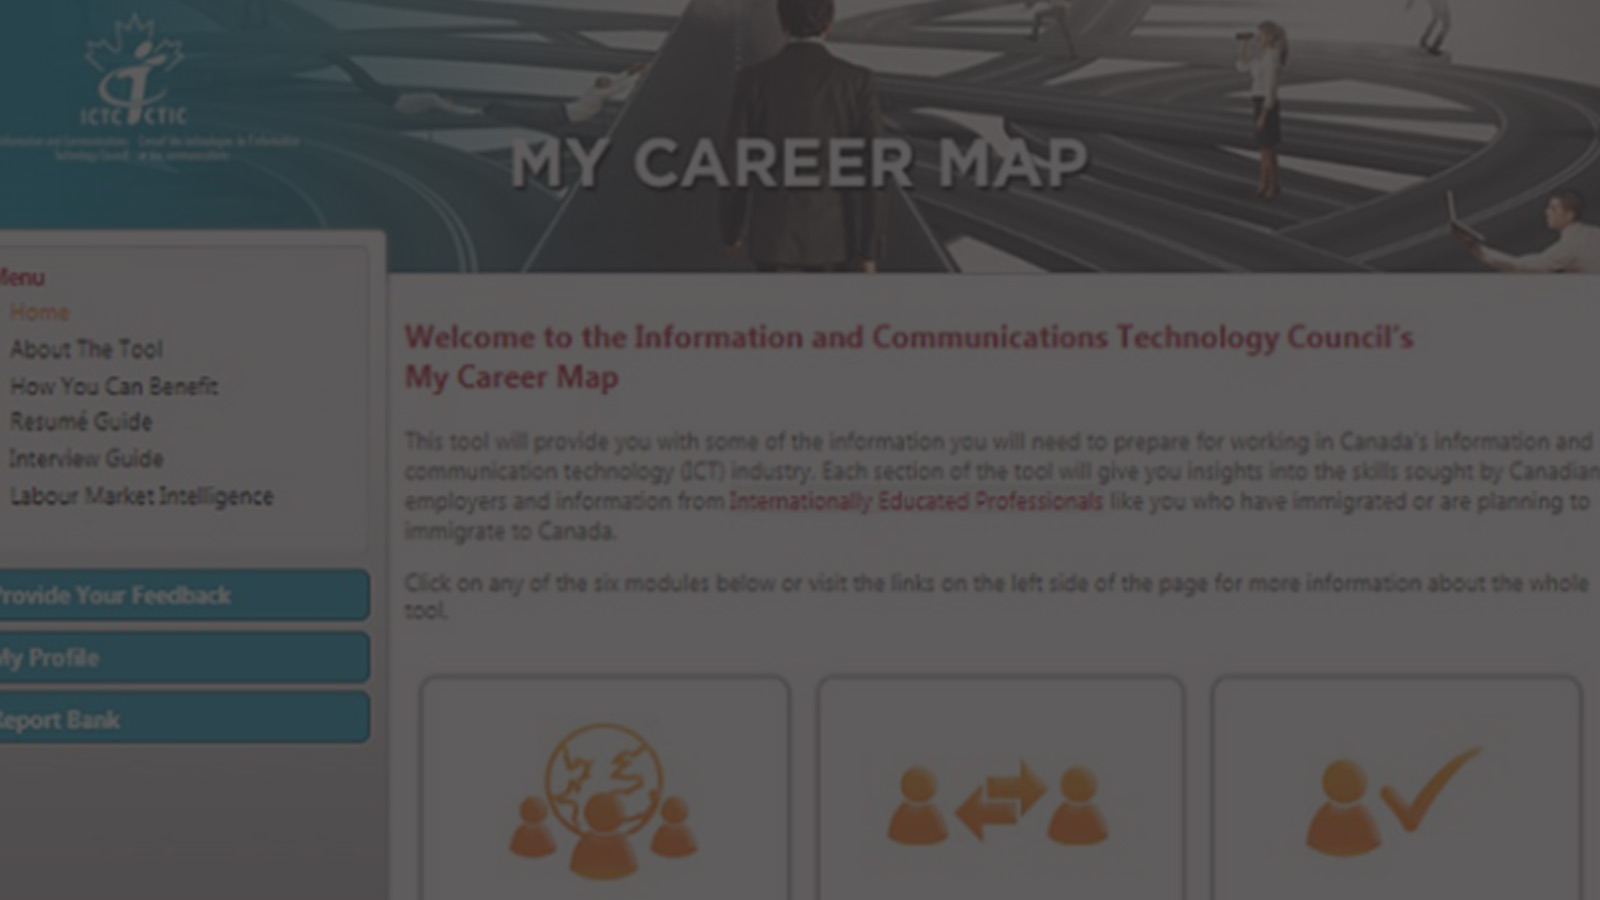 My Career Map